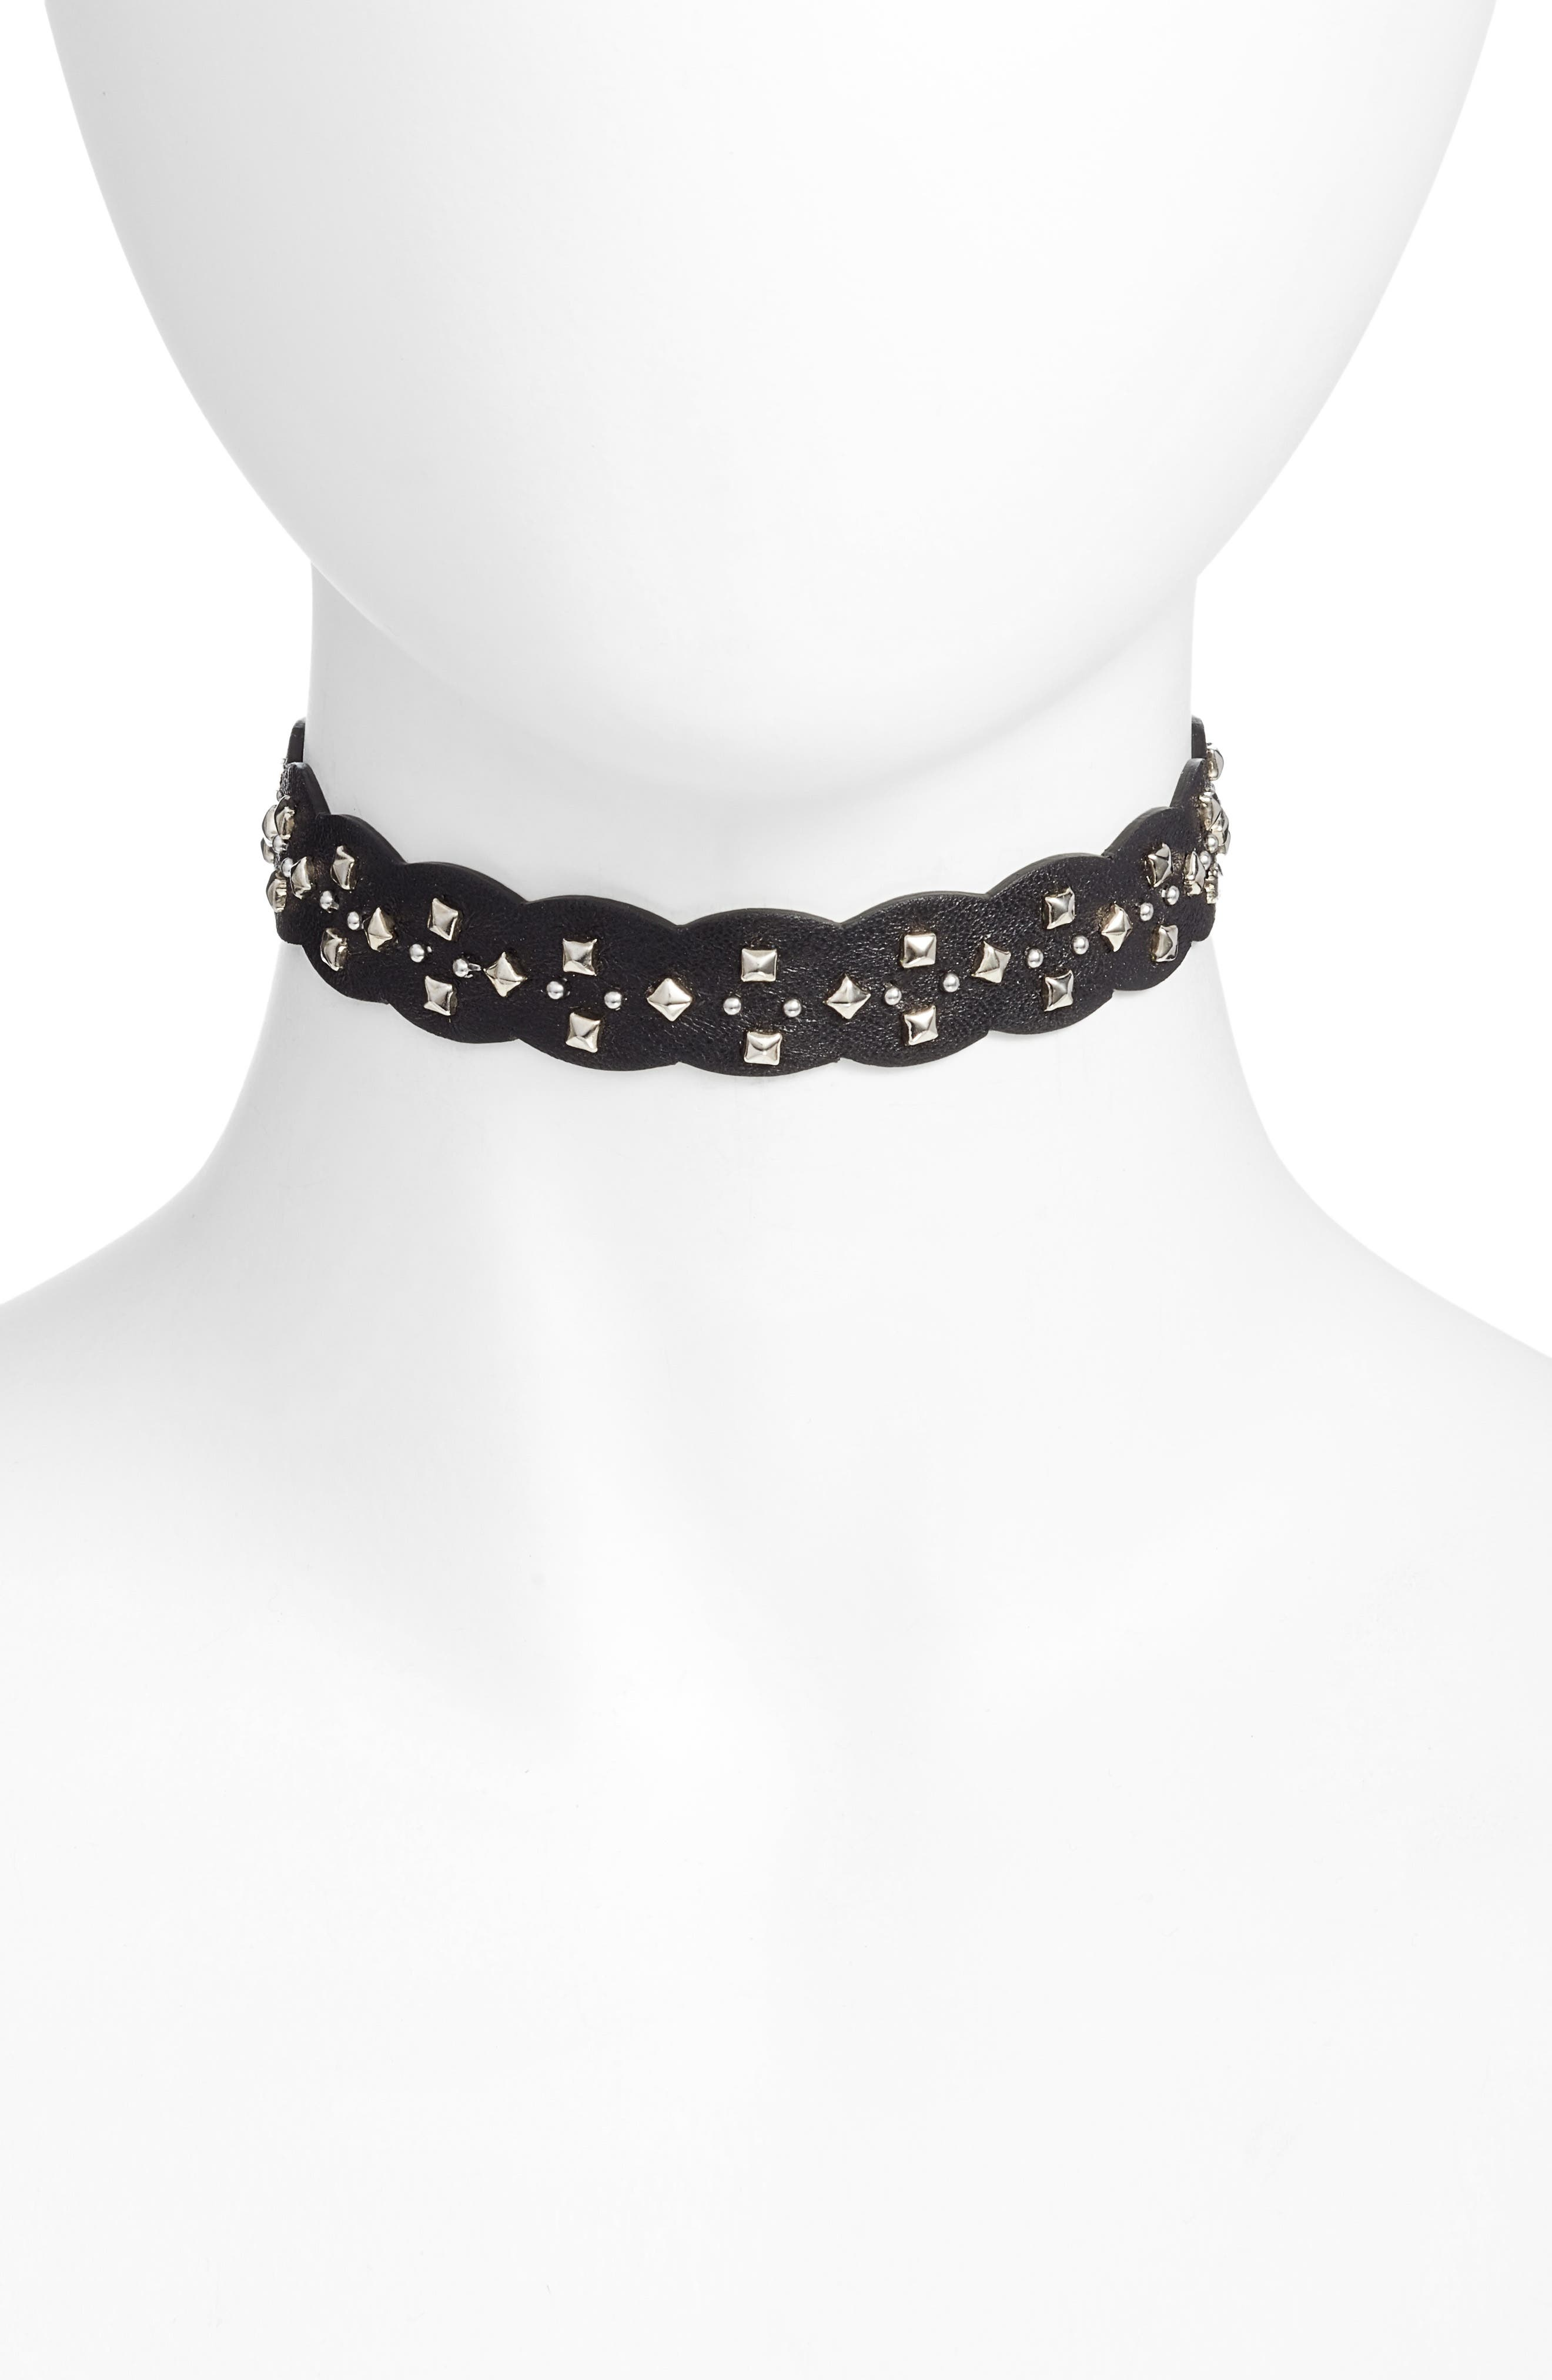 Leather Choker Necklace,                         Main,                         color, Black/ Silver